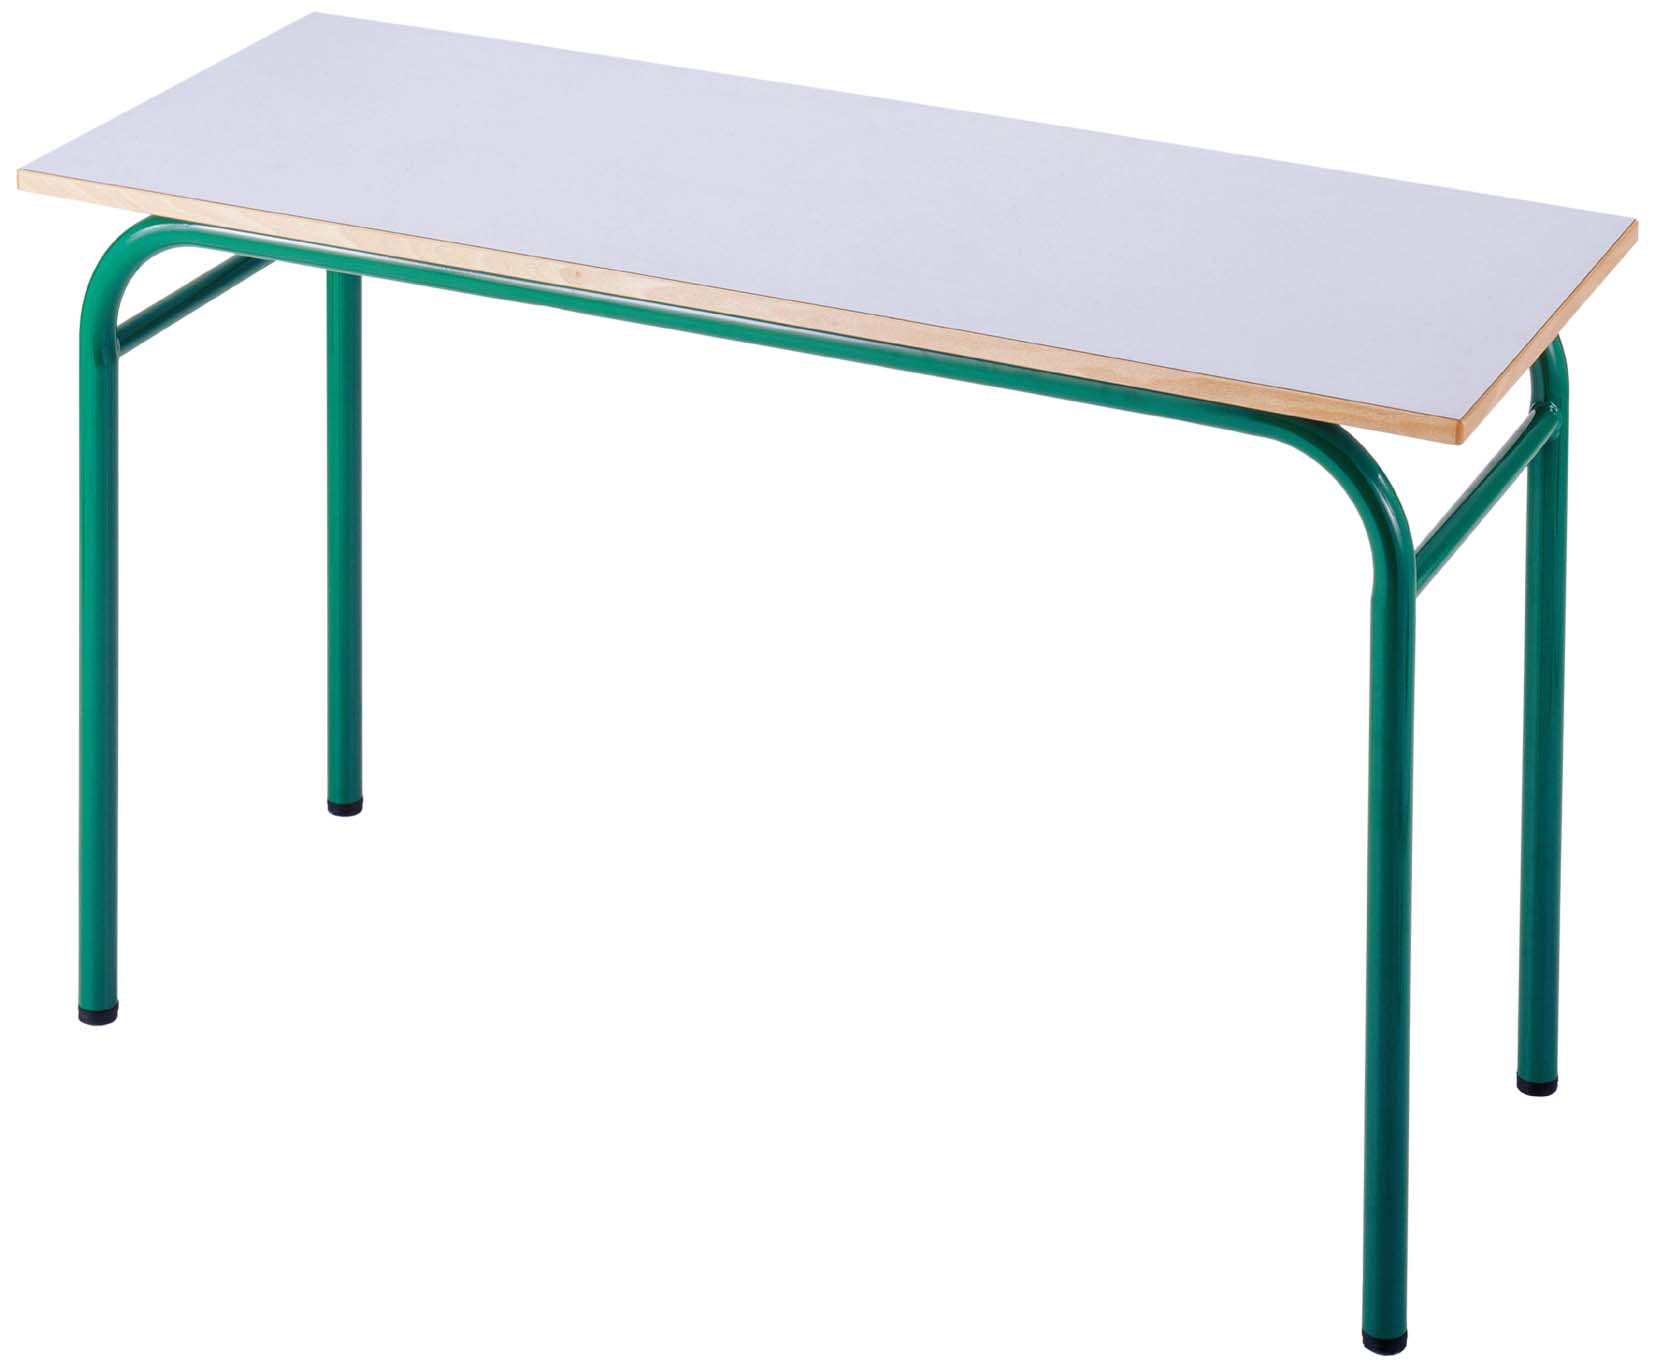 Table scolaire AXIS